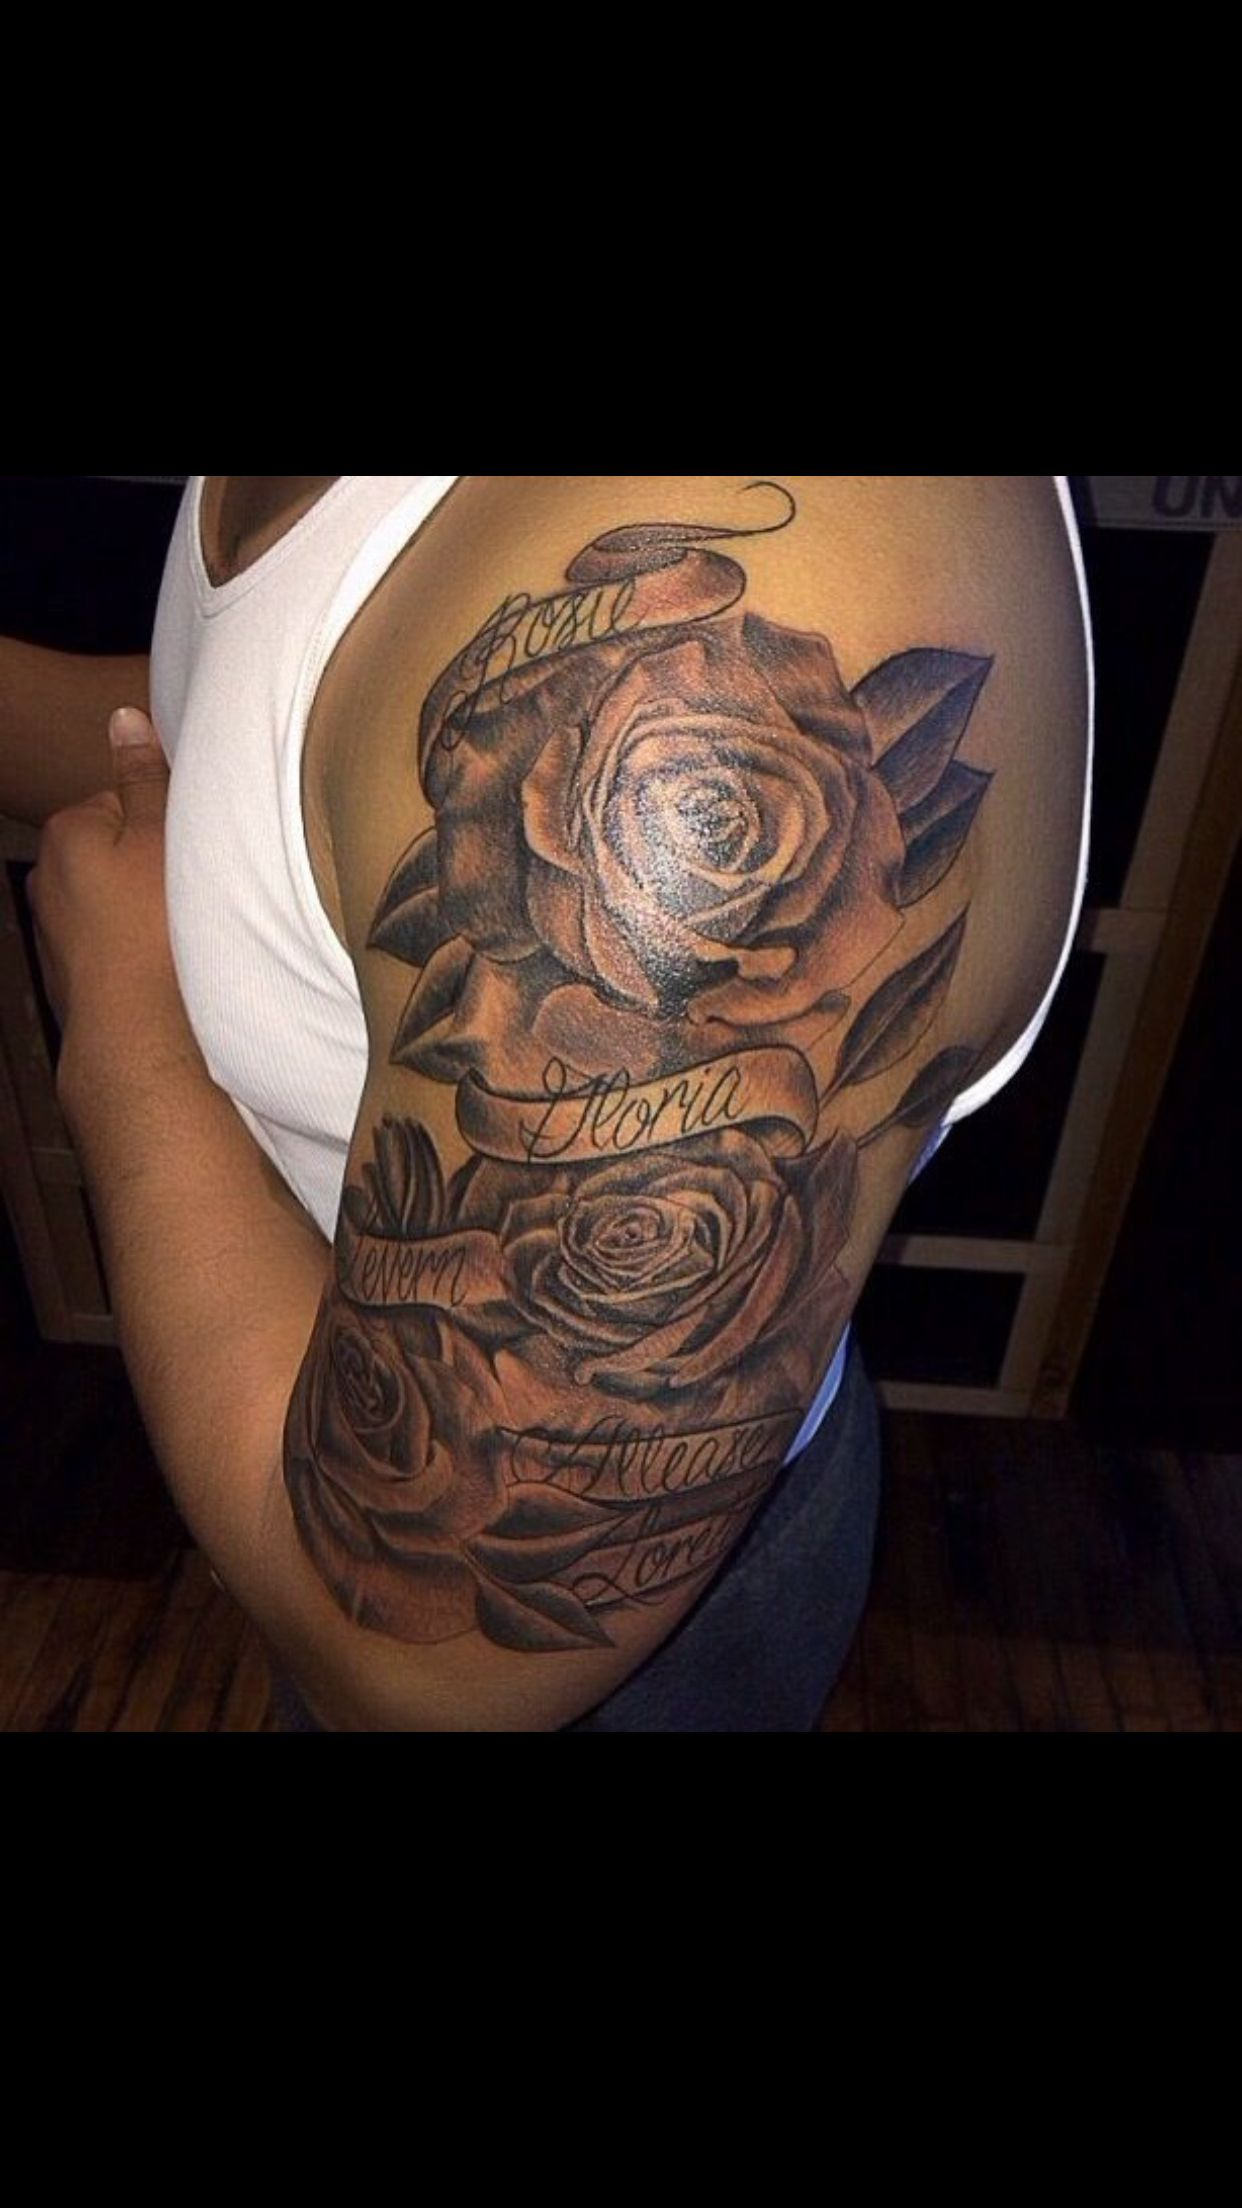 Pin By Katiie Loveless On Sleeve Names Tattoos For Men Tattoos